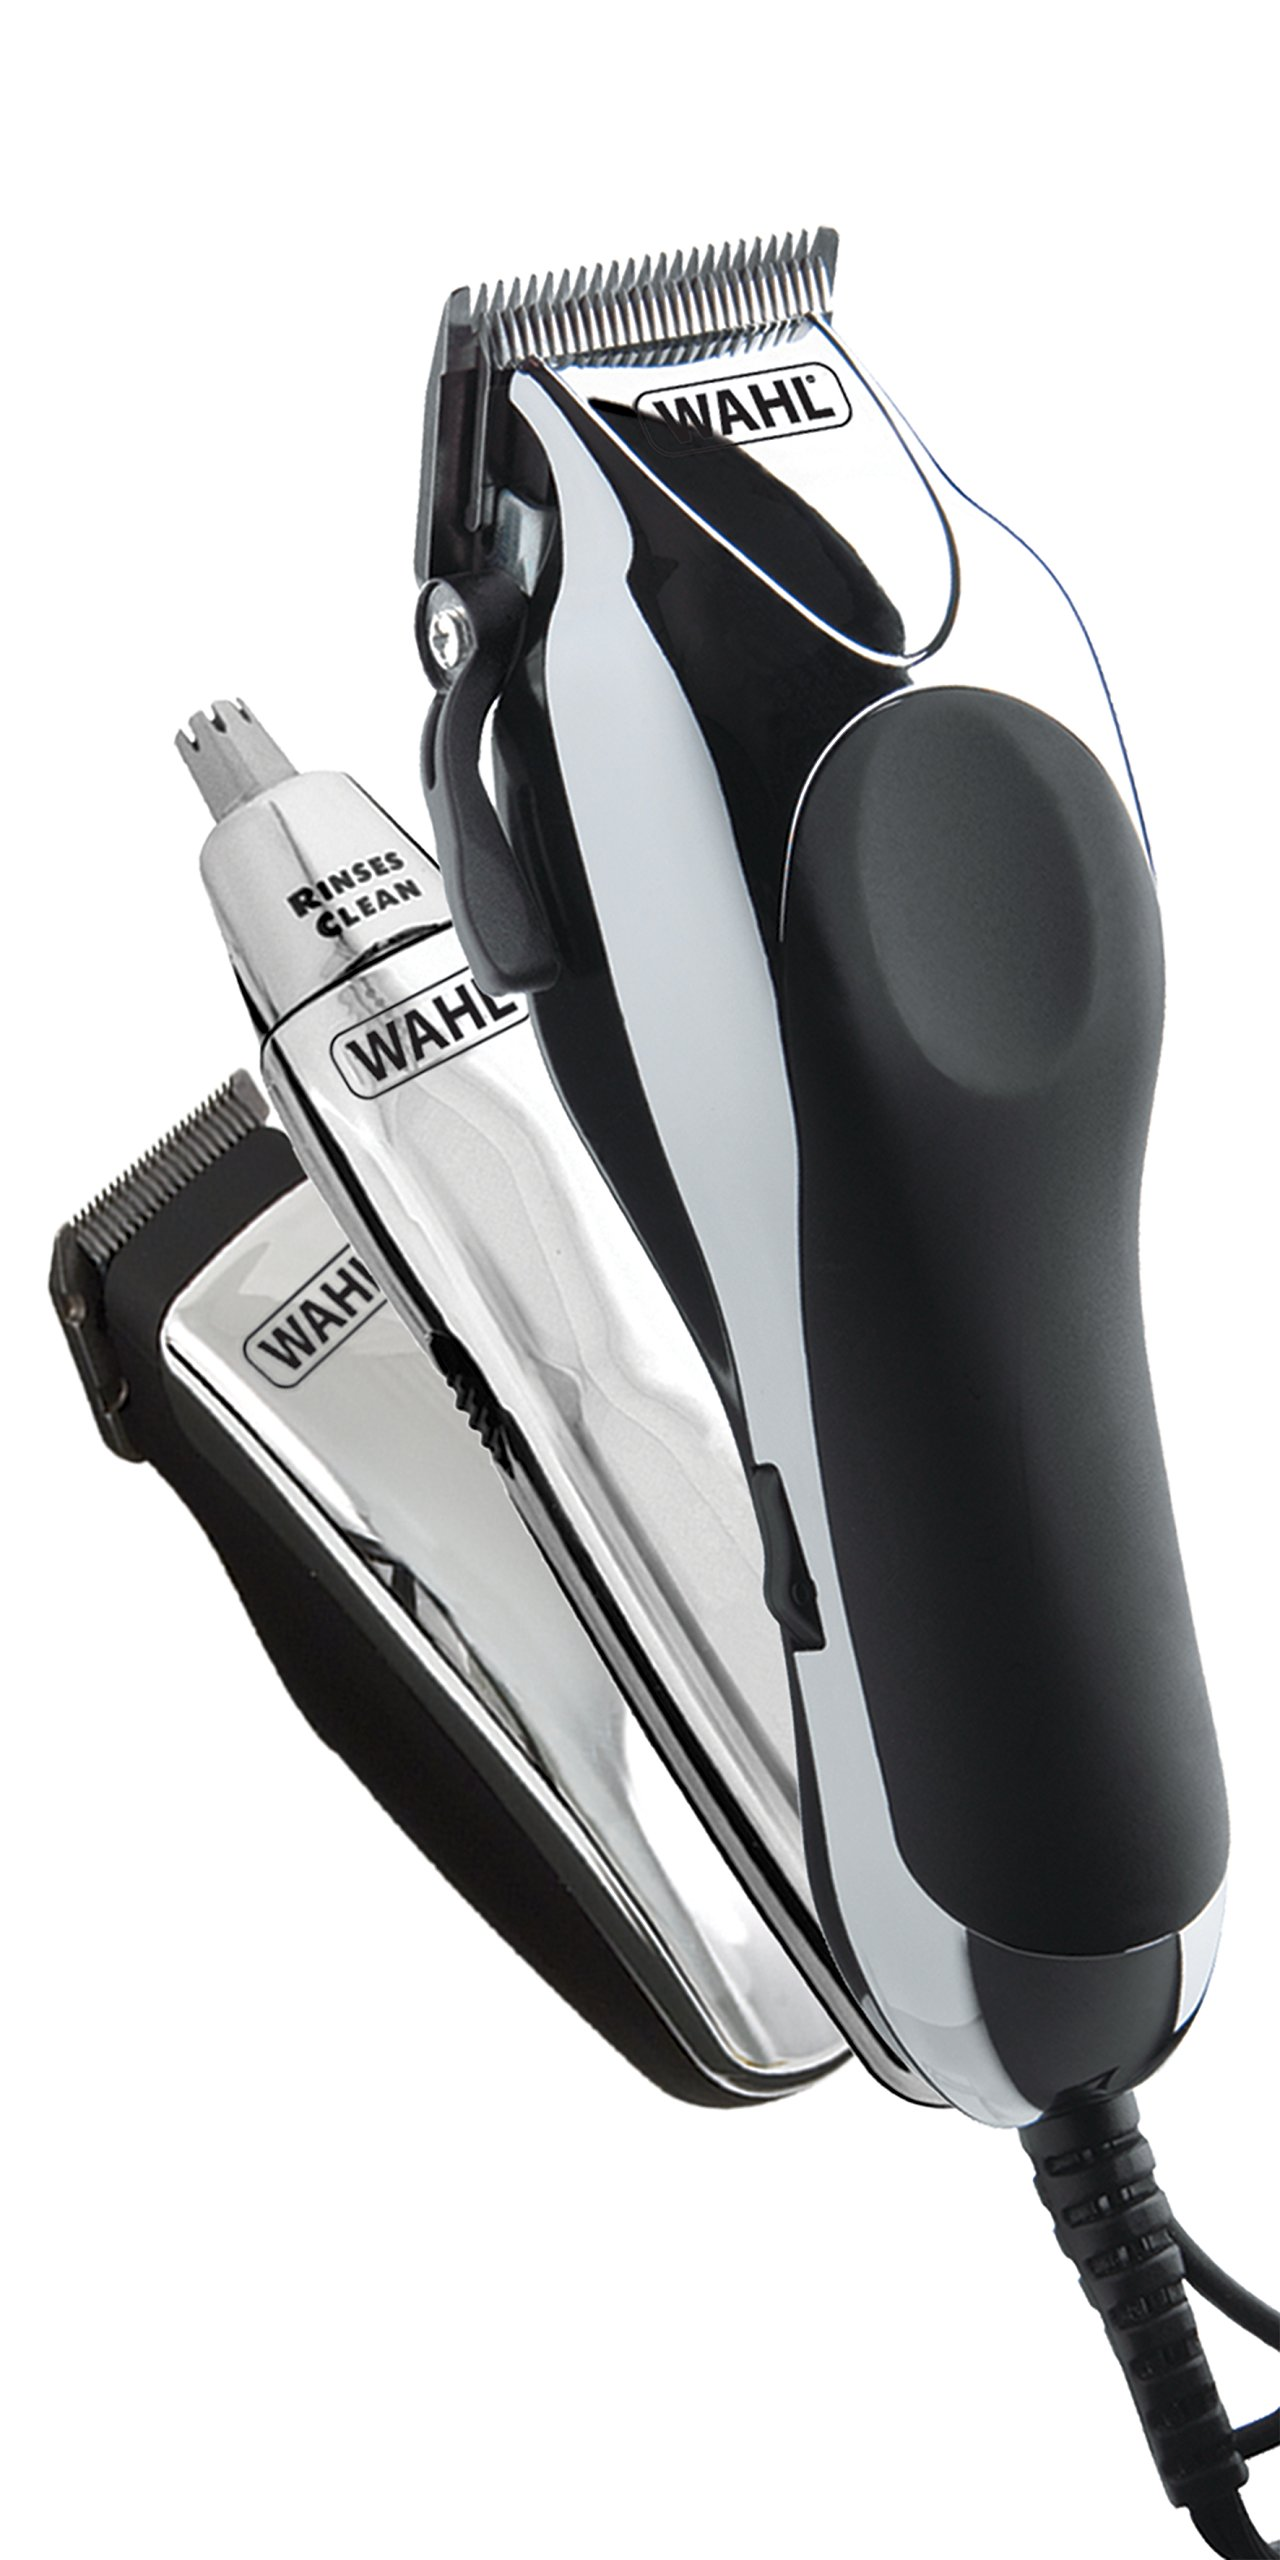 Wahl Chrome Pro Deluxe Mains Hair Clipper, Trimmer & Nasal Trimmer Set Chrome 79524-810 Gift Set